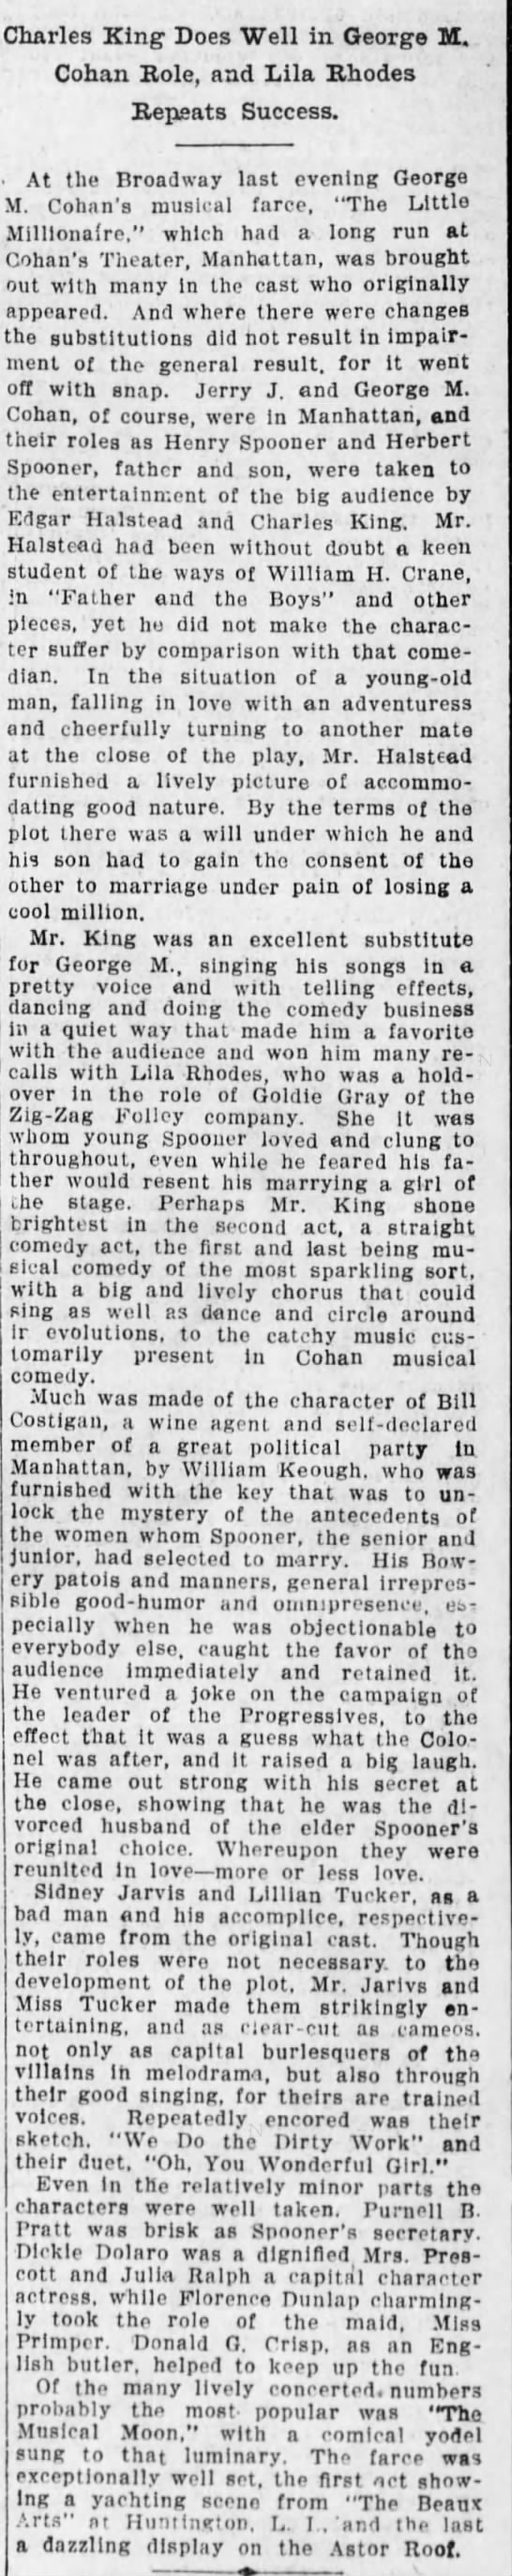 Little Millionaire - more details 24Sept1912 p26 Brooklyn Daily Eagle -